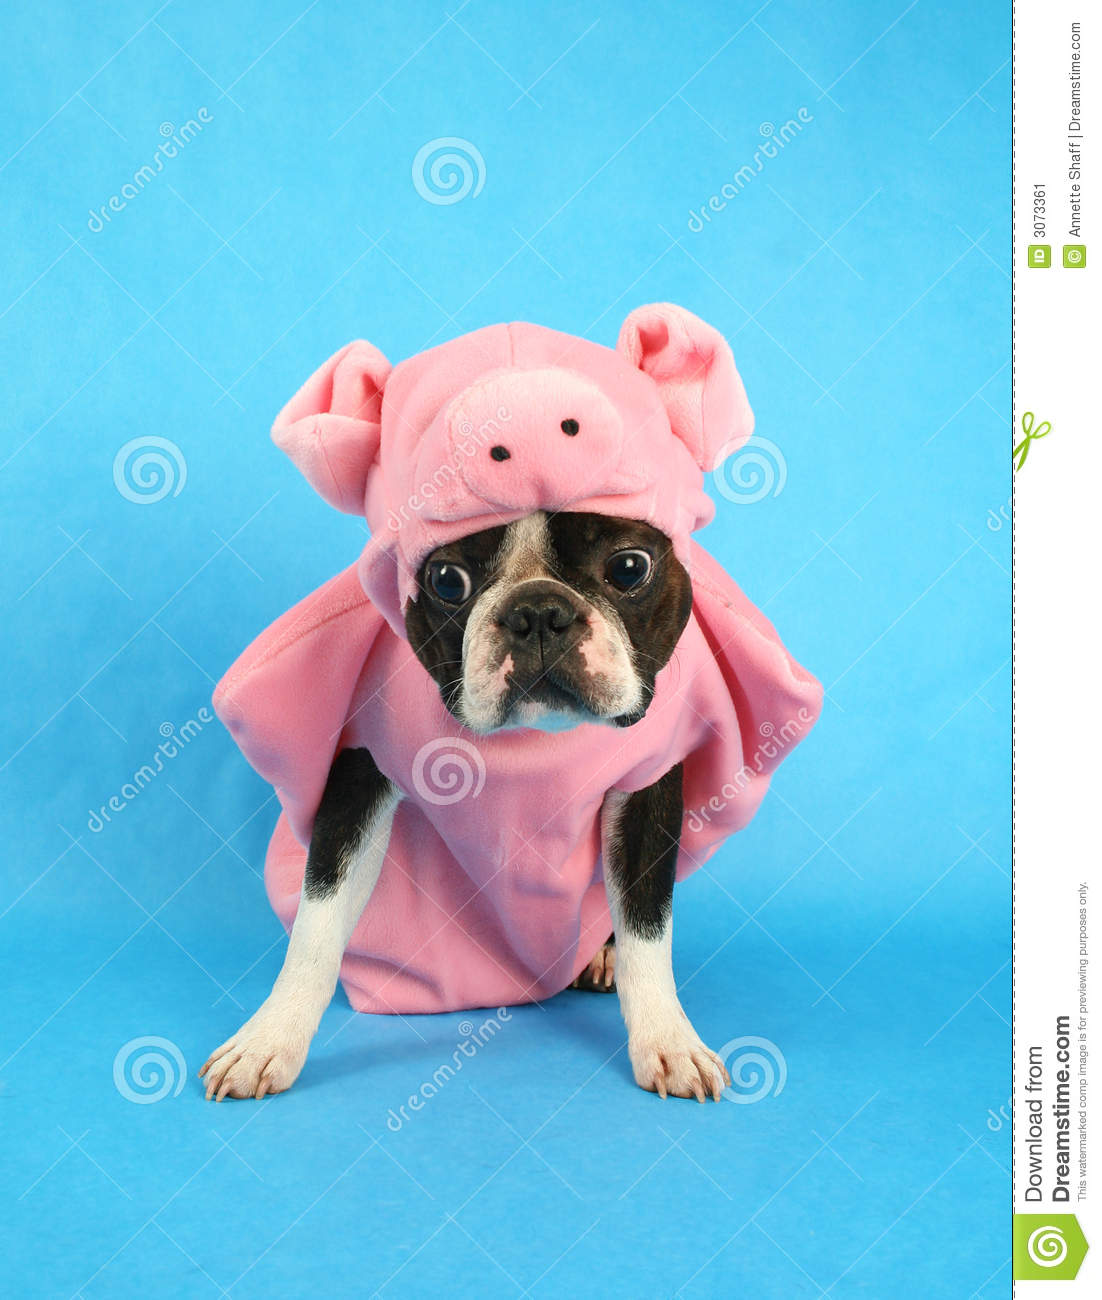 Royalty-Free Stock Photo & Pig dog stock image. Image of mammal girl boston pedigree - 3073361